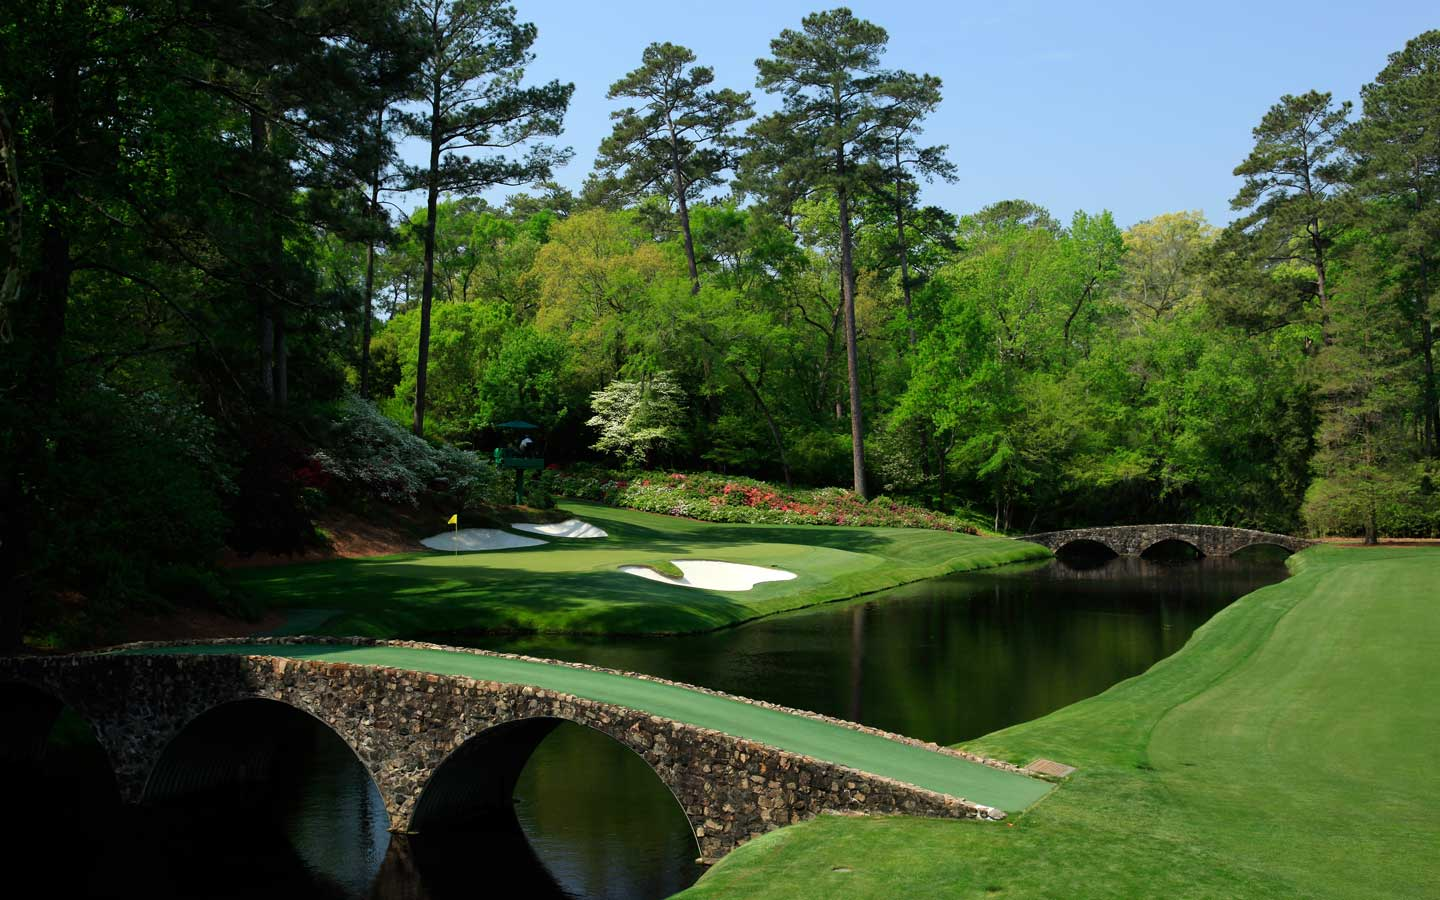 Free 2015 wallpapers of augusta national wallpaper cave for Augusta national wall mural